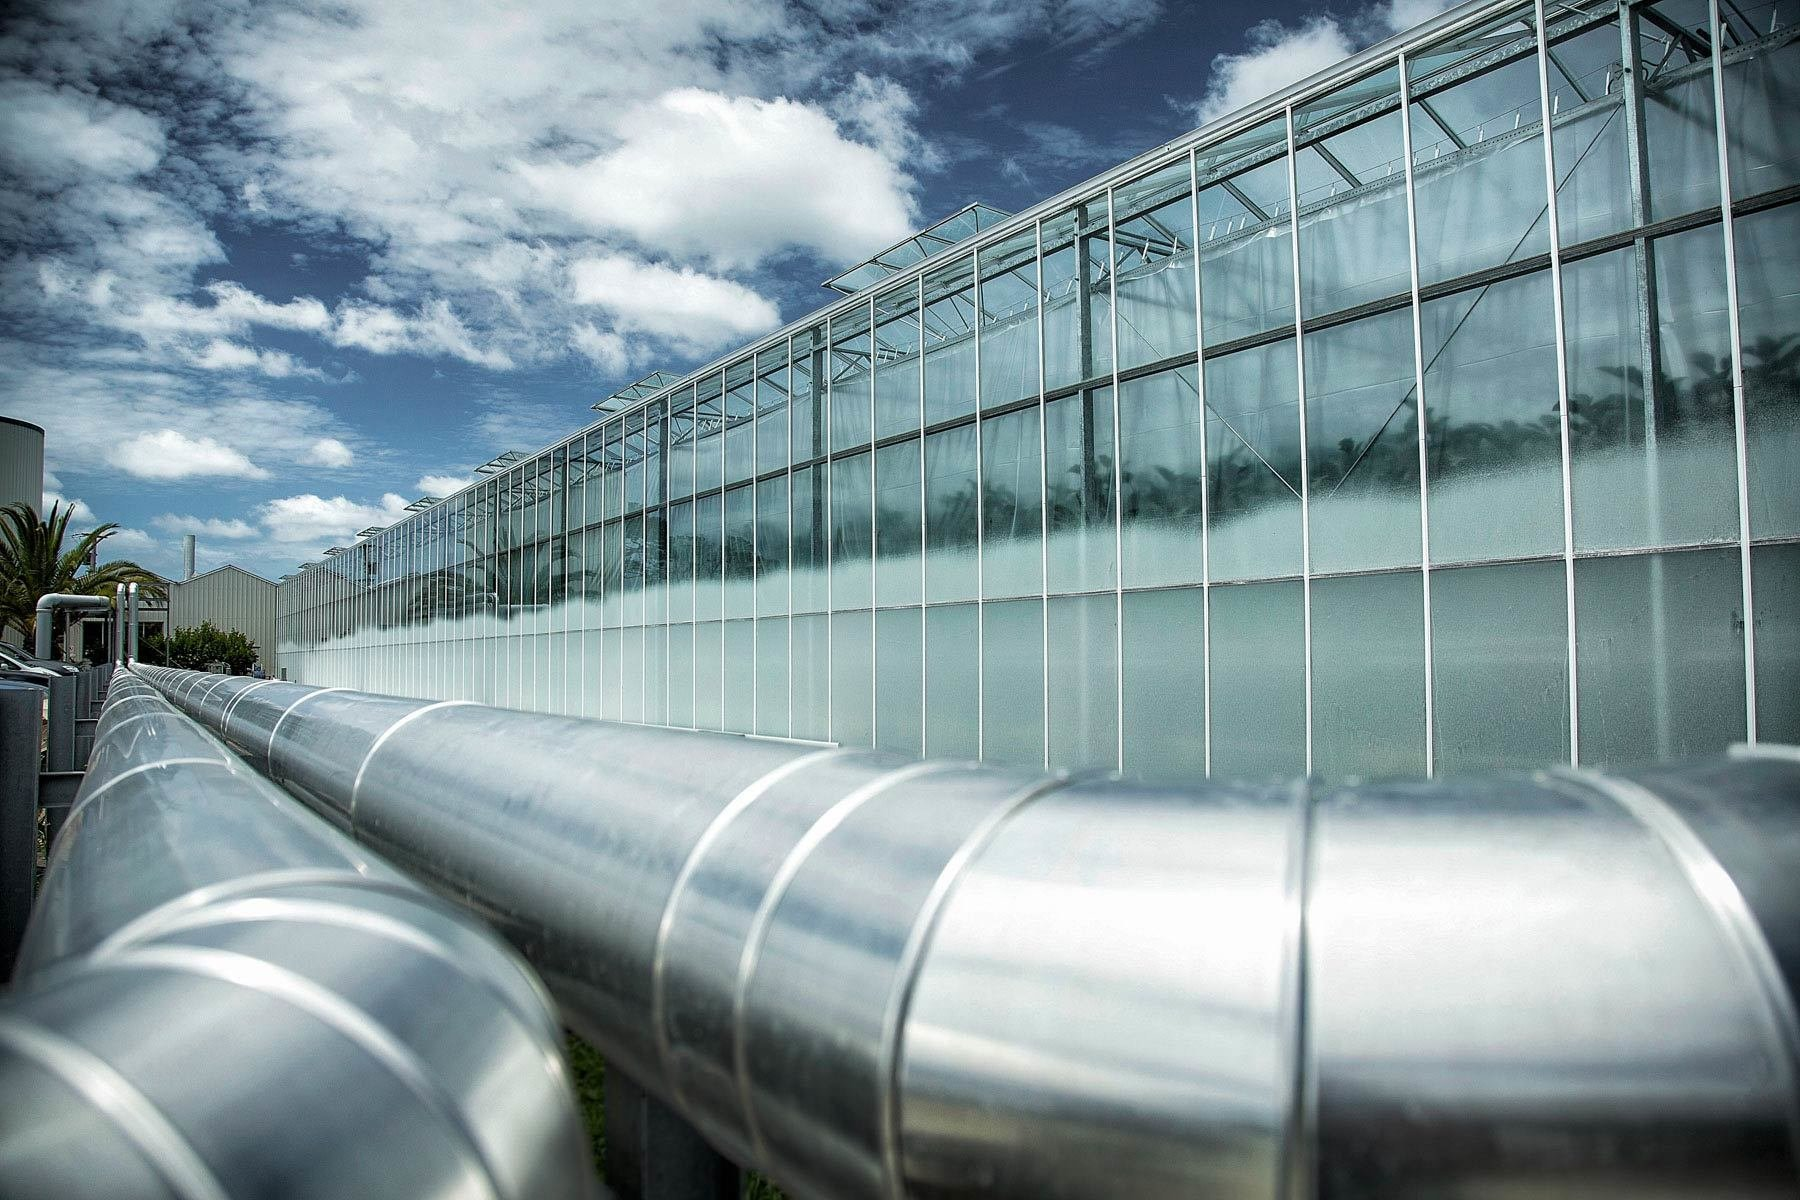 Heated water exchange pipes  which run between Forestburg Eggplants and Redvale Energy Park